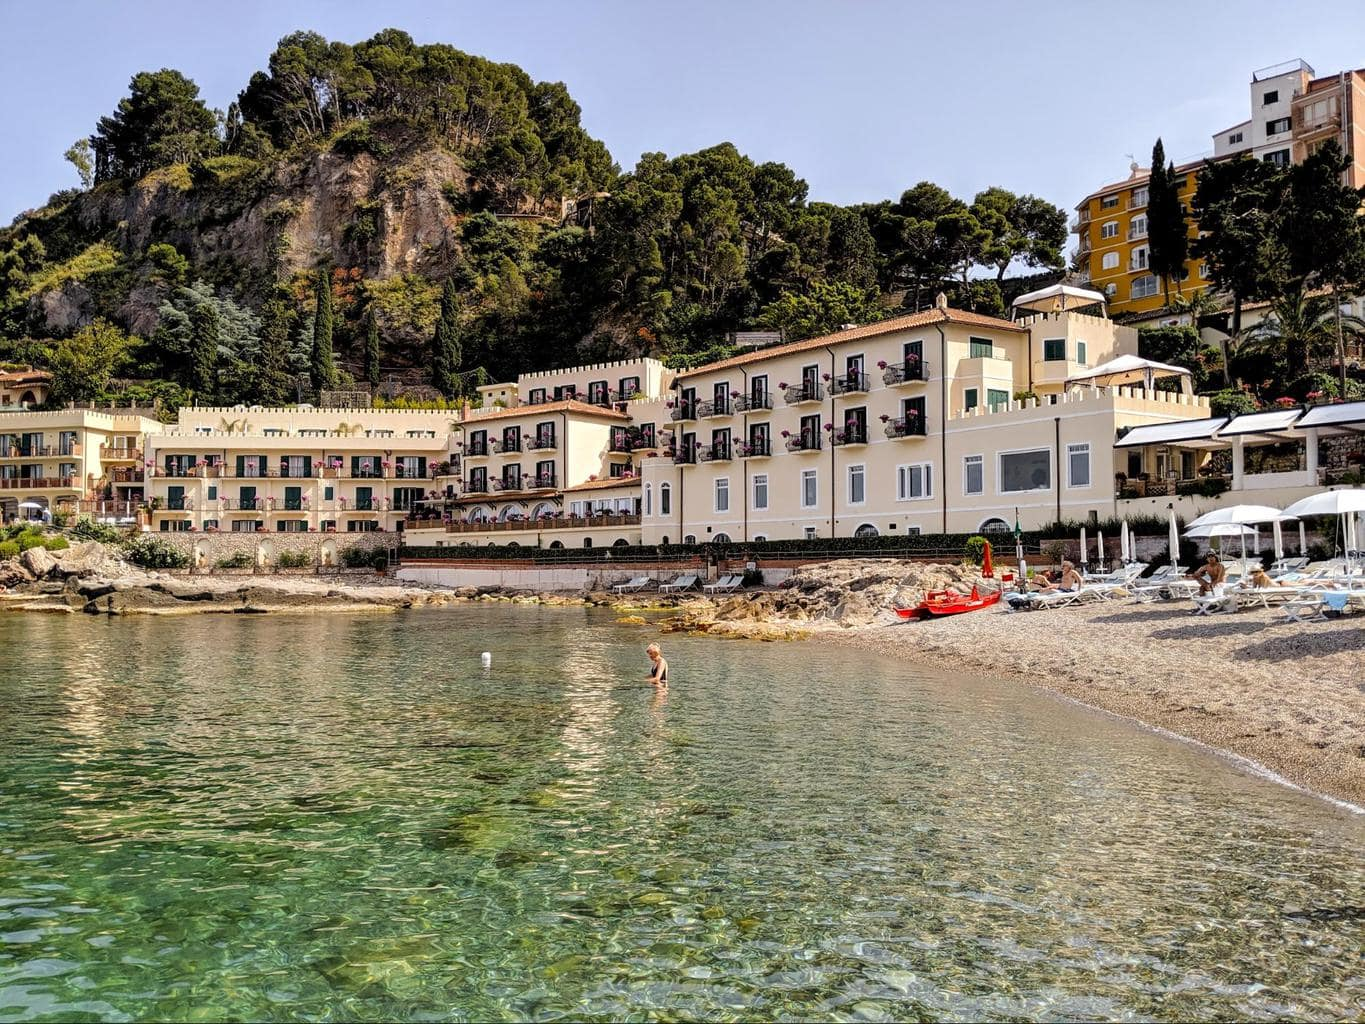 Belmond Villa Sant'Andrea - A beach hotel in a bourgeois vacation home